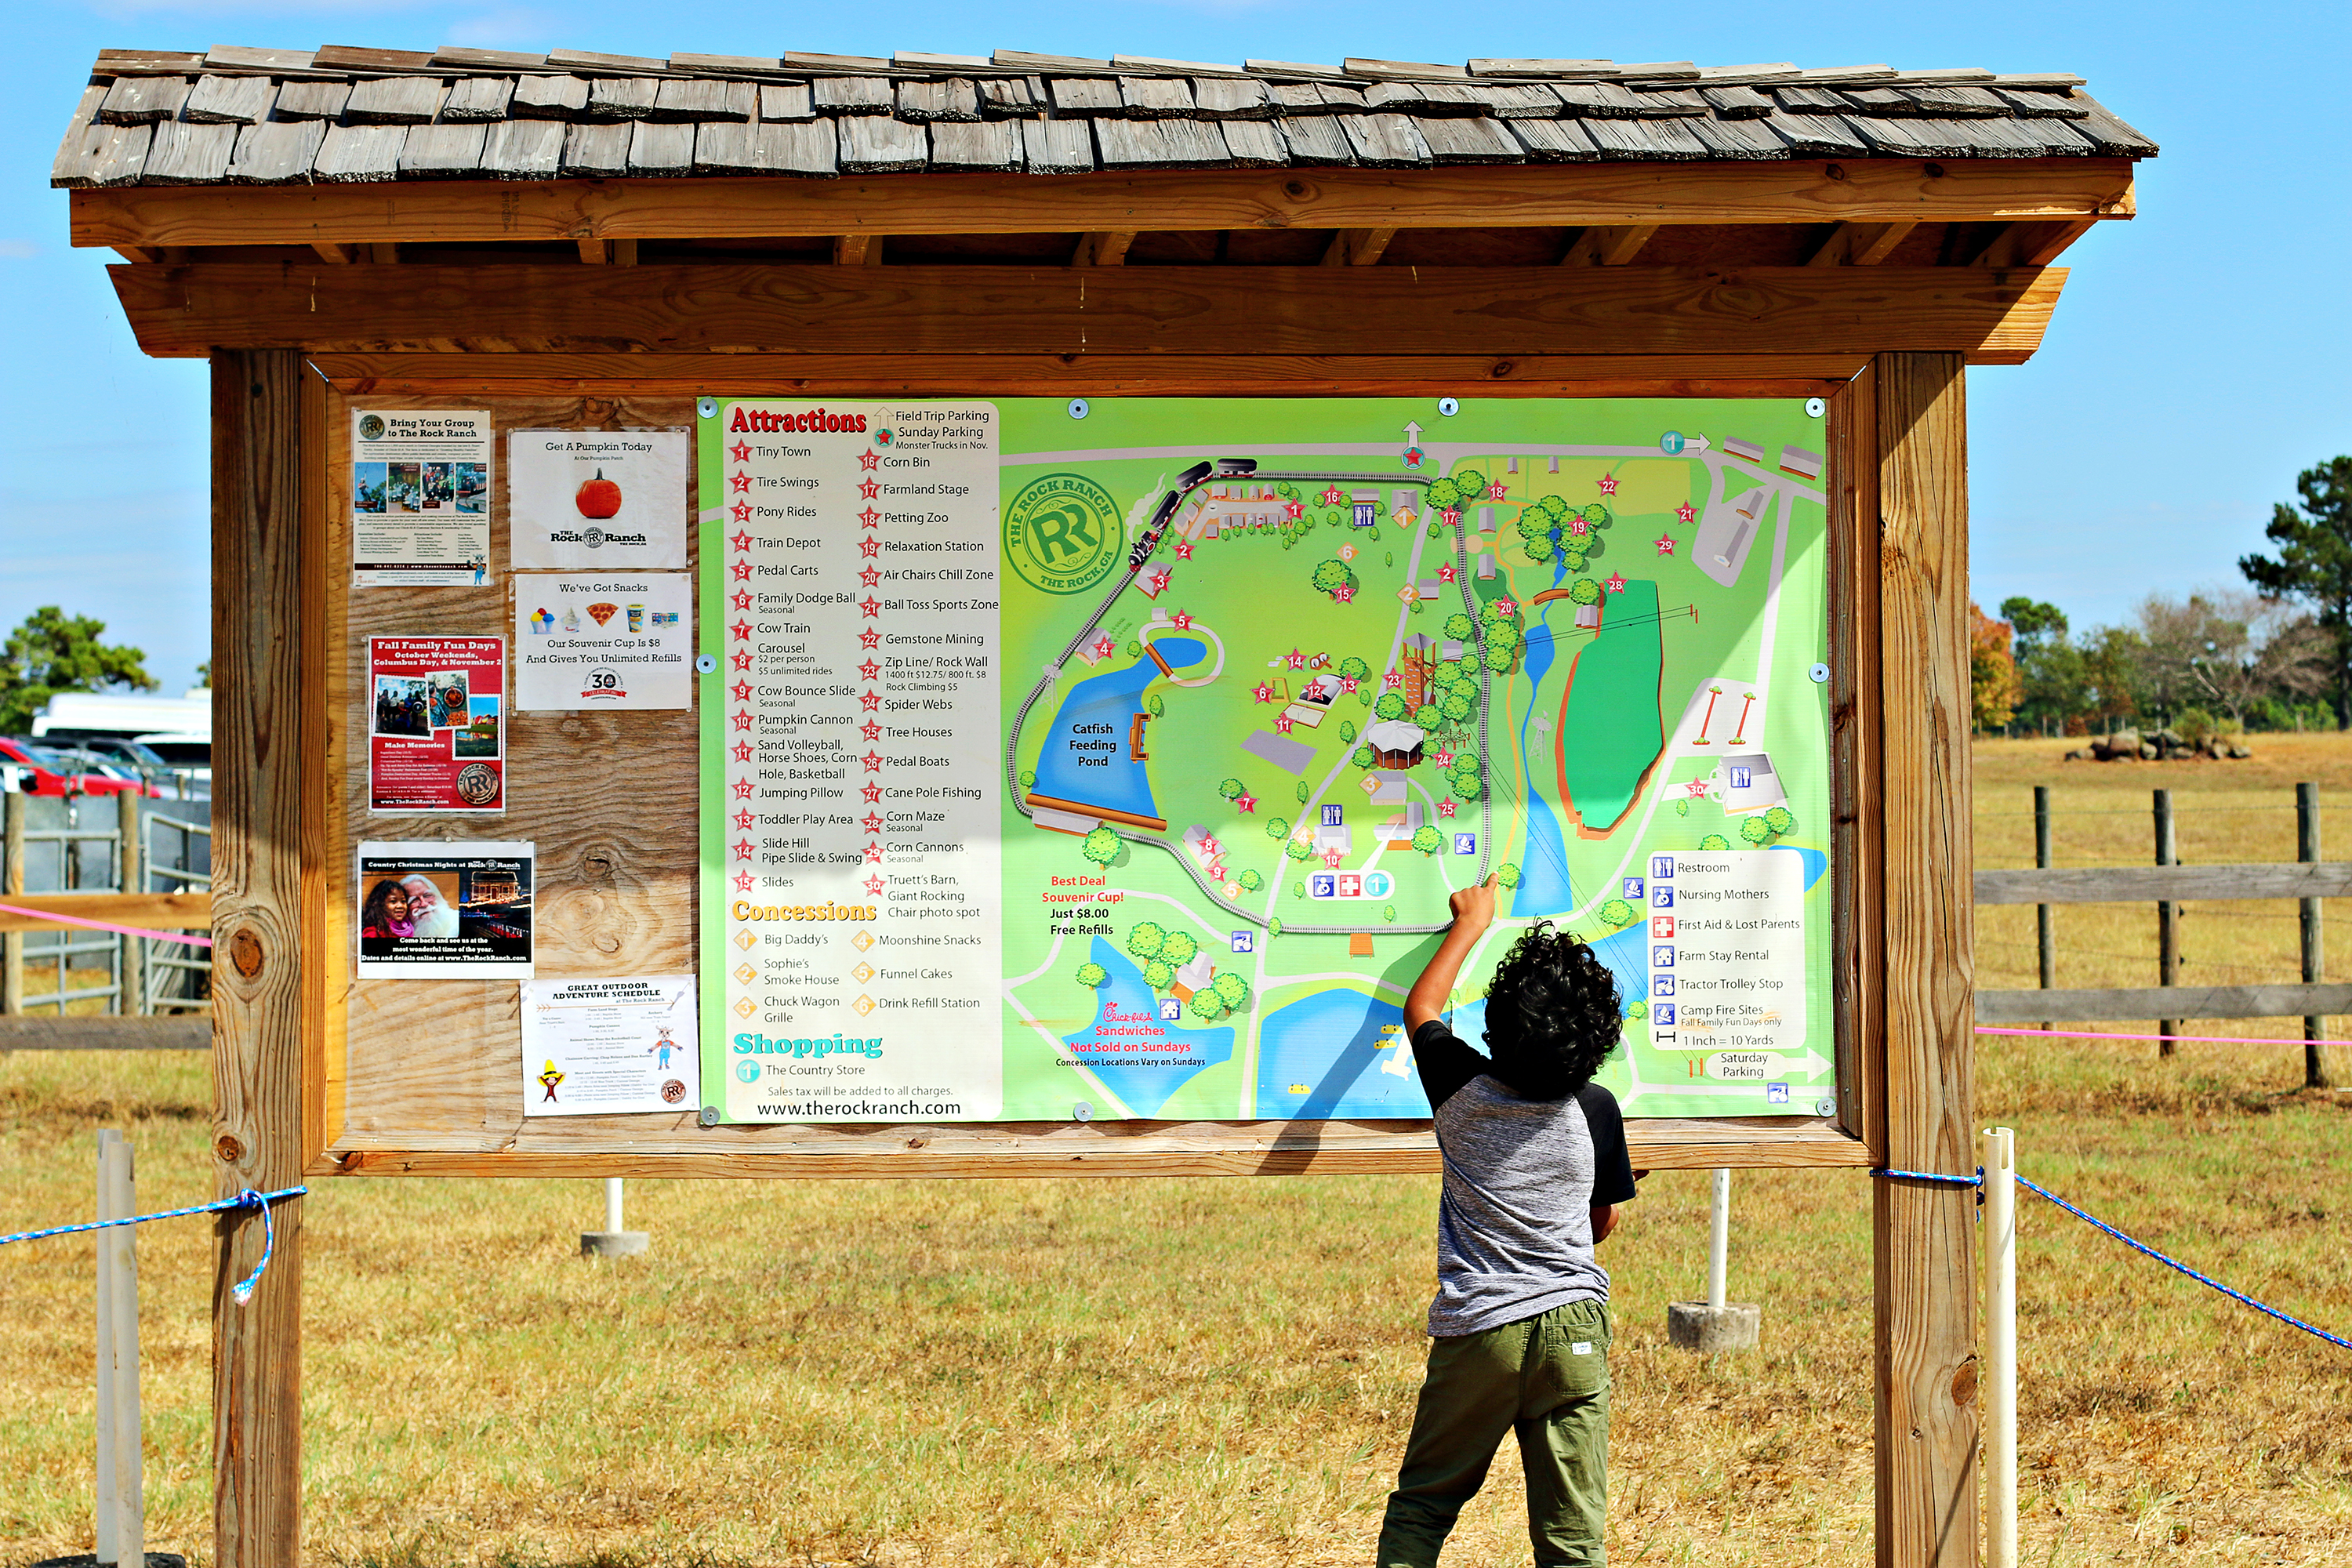 Boy pointing to an attraction on The Rock Ranch map.